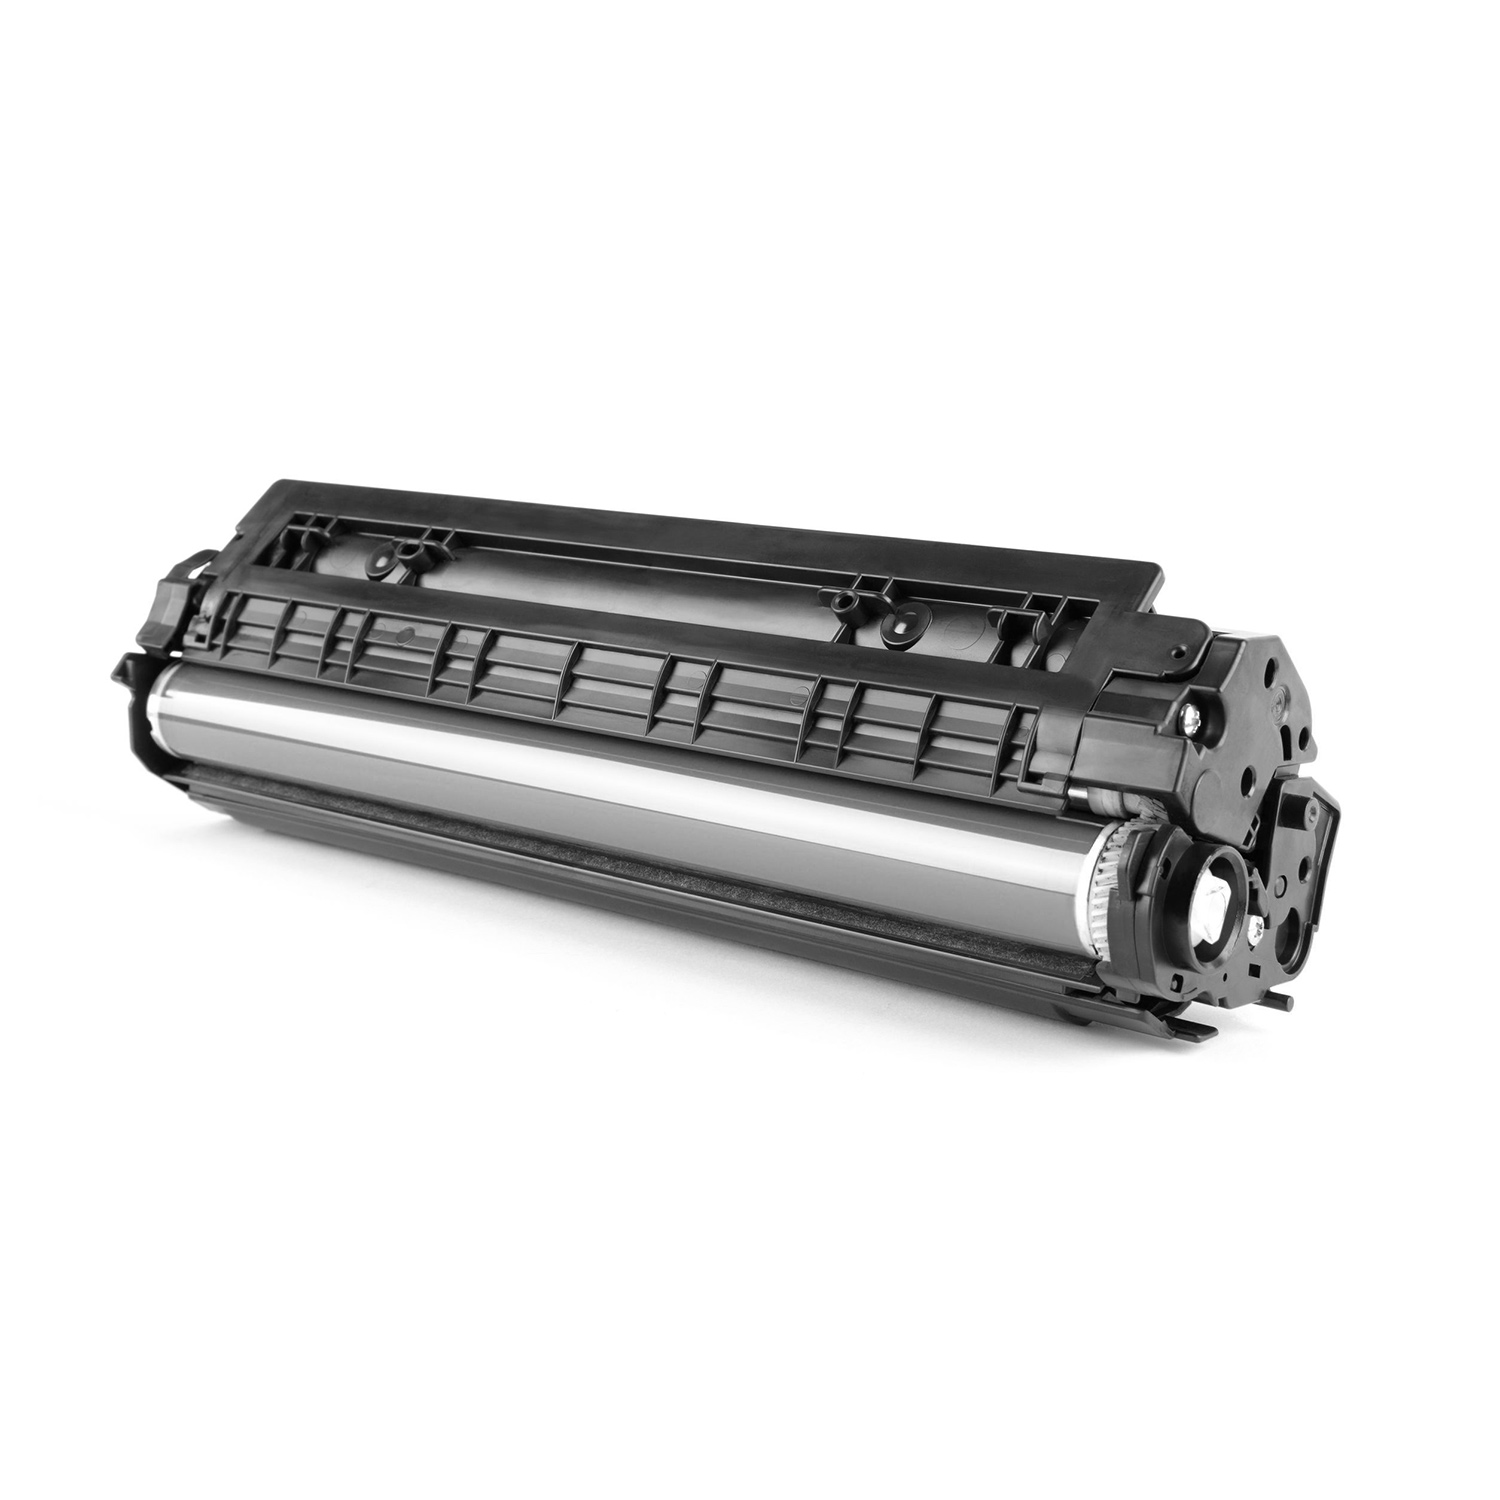 TonerPartenaire HP C4127X Toner XXL (2x 20.000 pages) Lot de 2